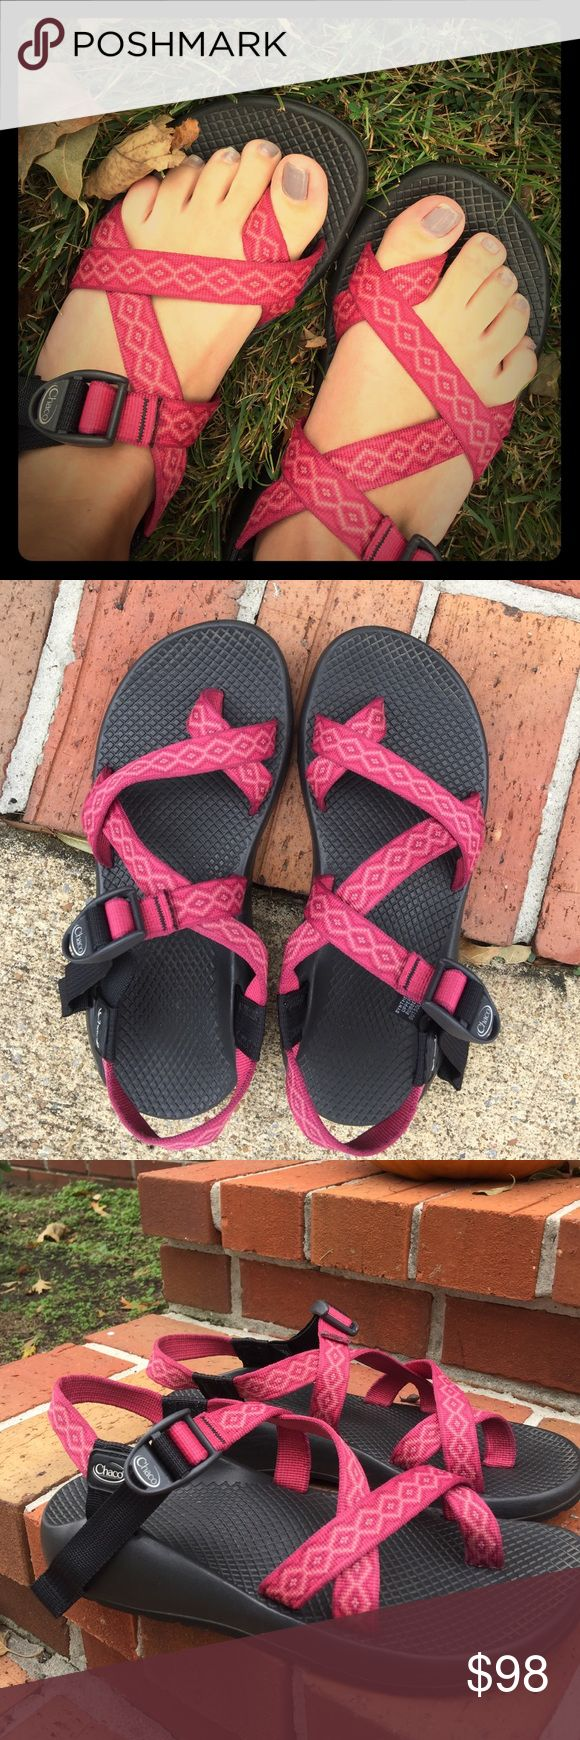 Women's thick toe strap Chacos WONDERFUL condition. Such a great transitional shoe to have :-) color has a pink tint but is more of a dark deep pink. Love the Aztec design! No longer available on their website! Chacos Shoes Sandals